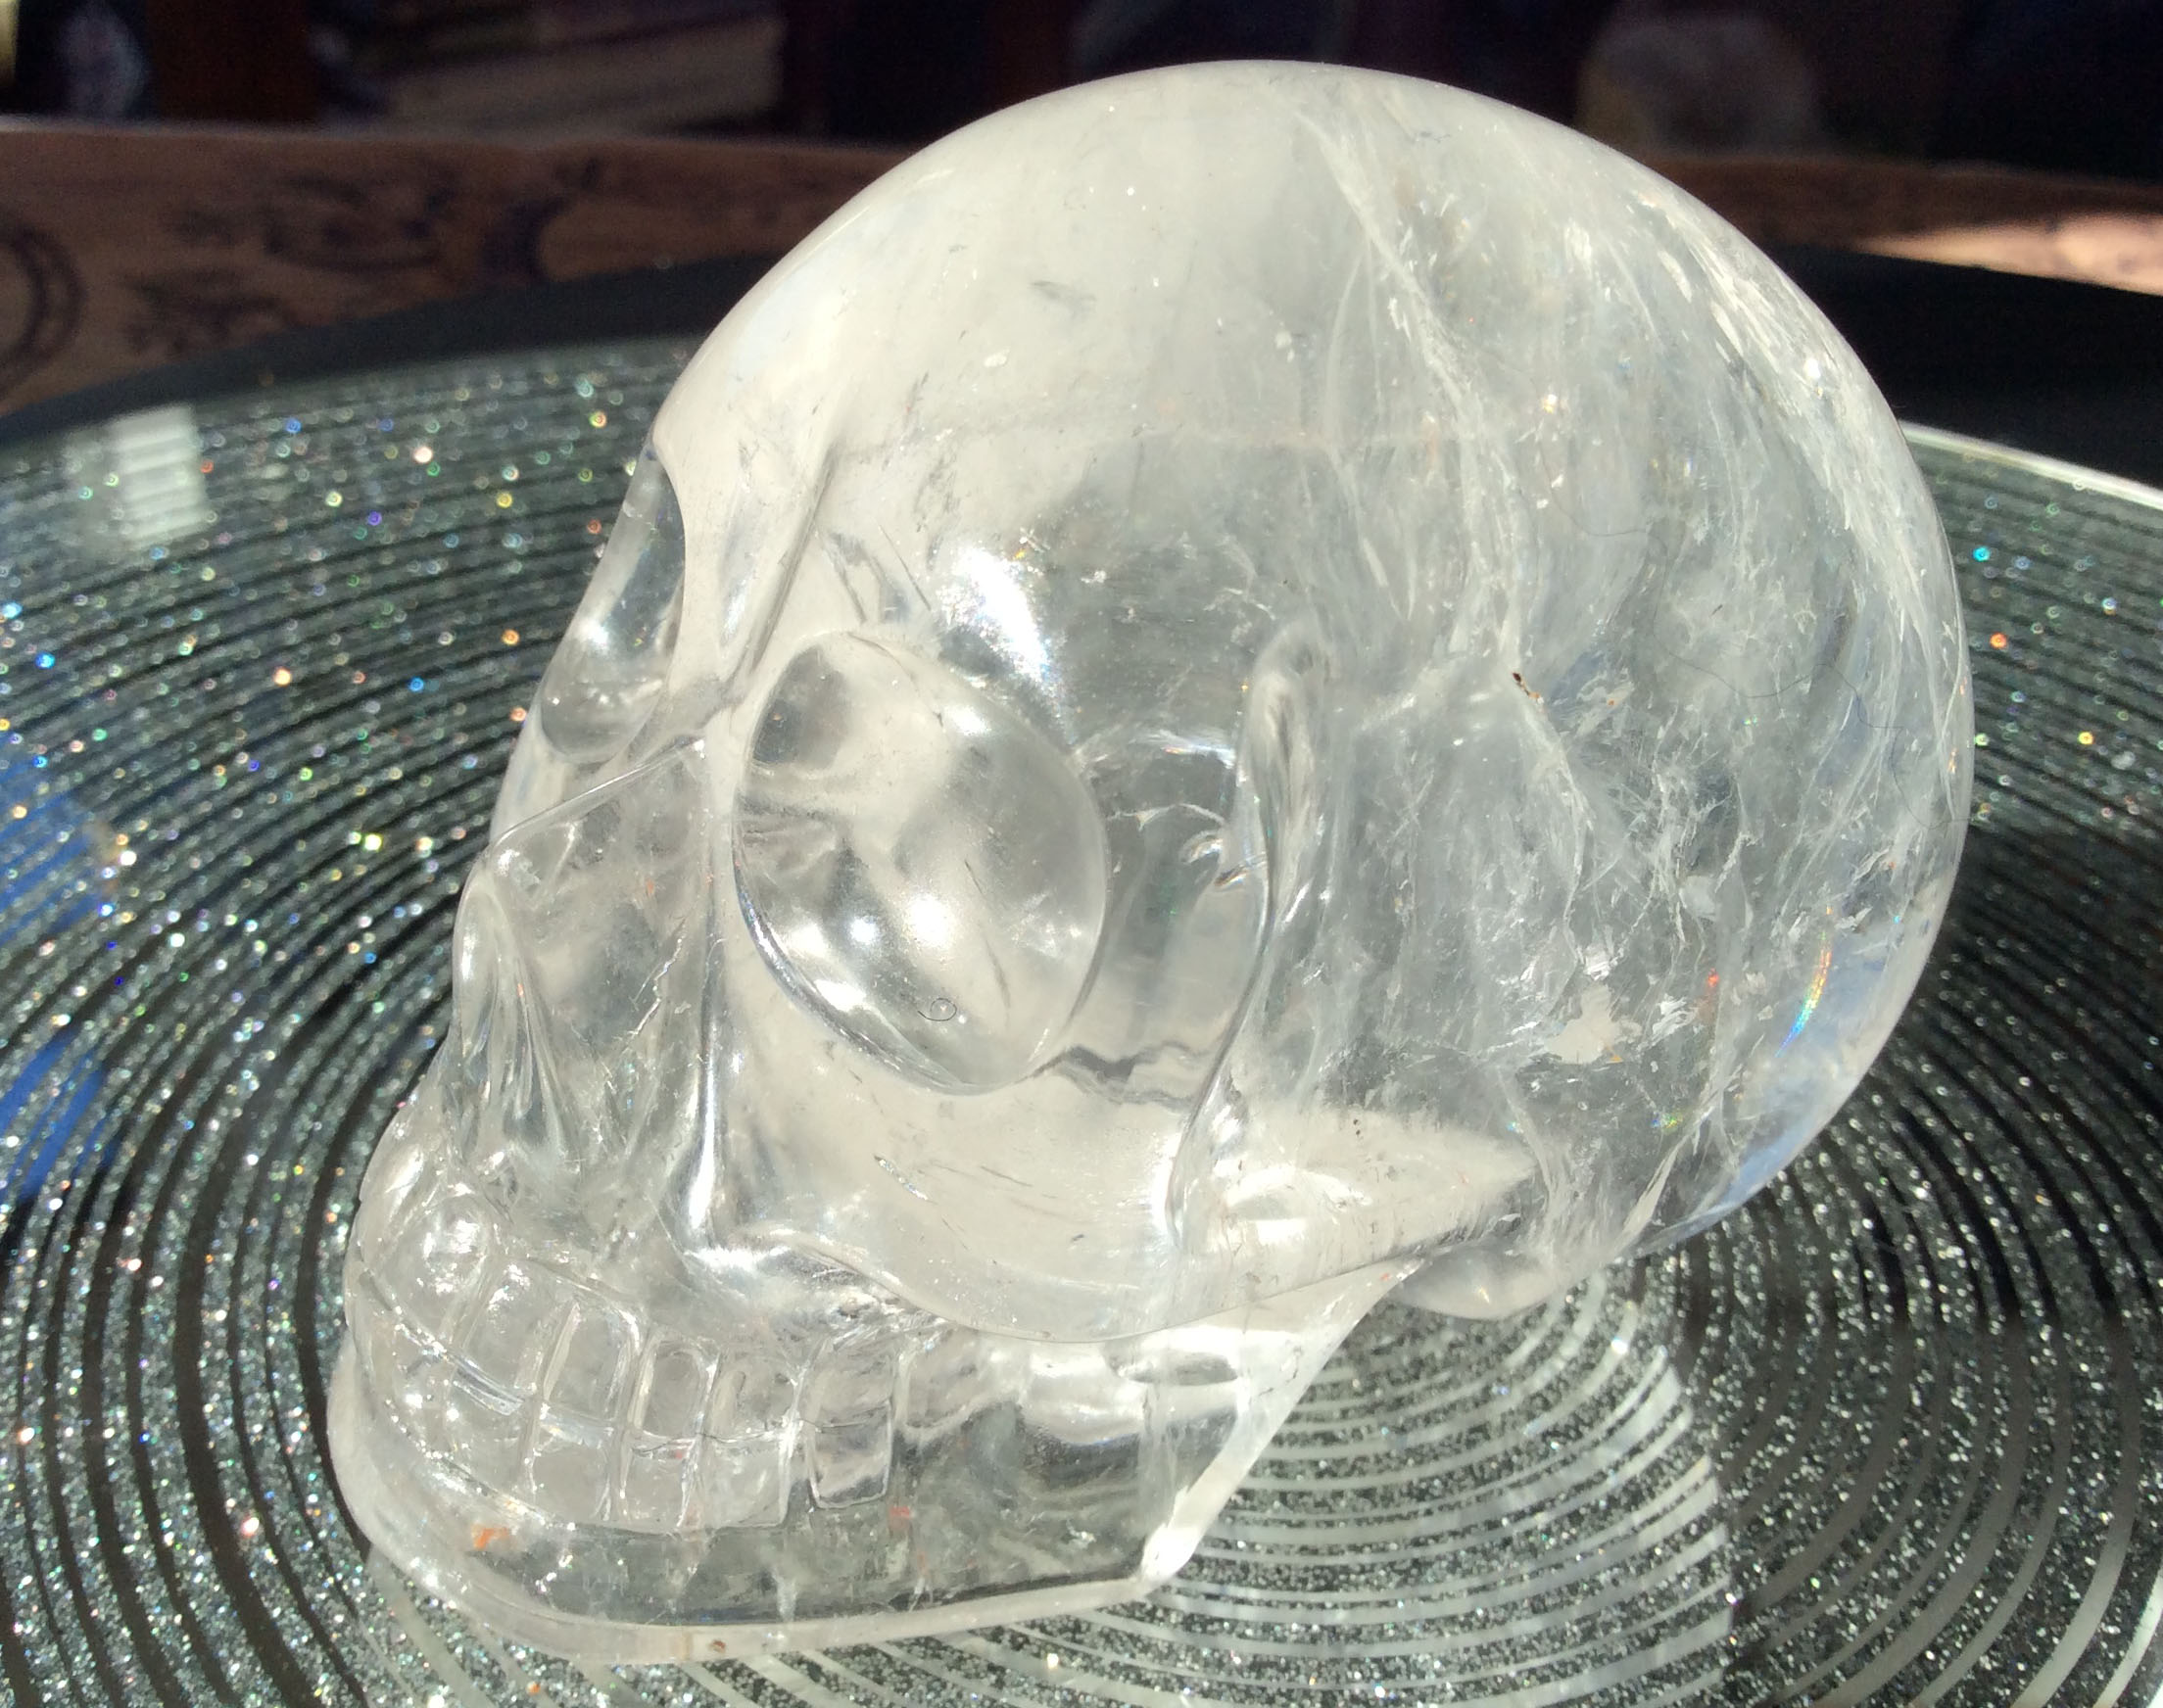 Crystal Skull Article: The most incredible details about ancient crystal skulls